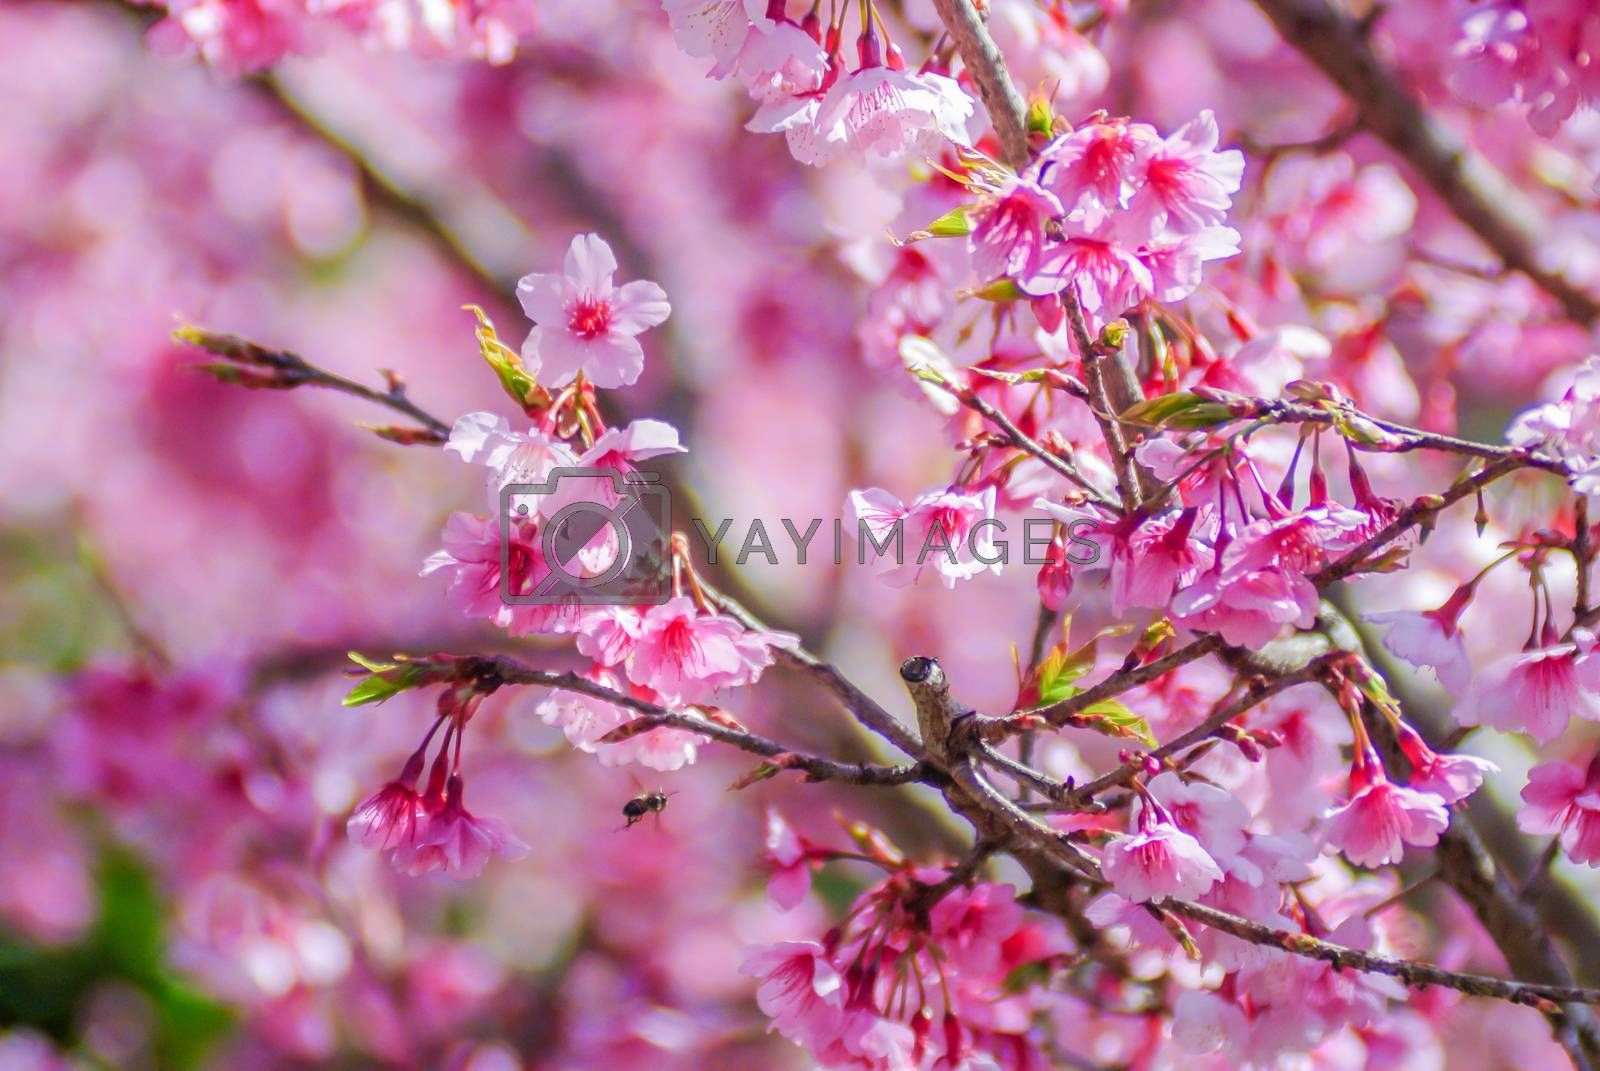 Pink Cherry Blosssom in spring by YuiYuize